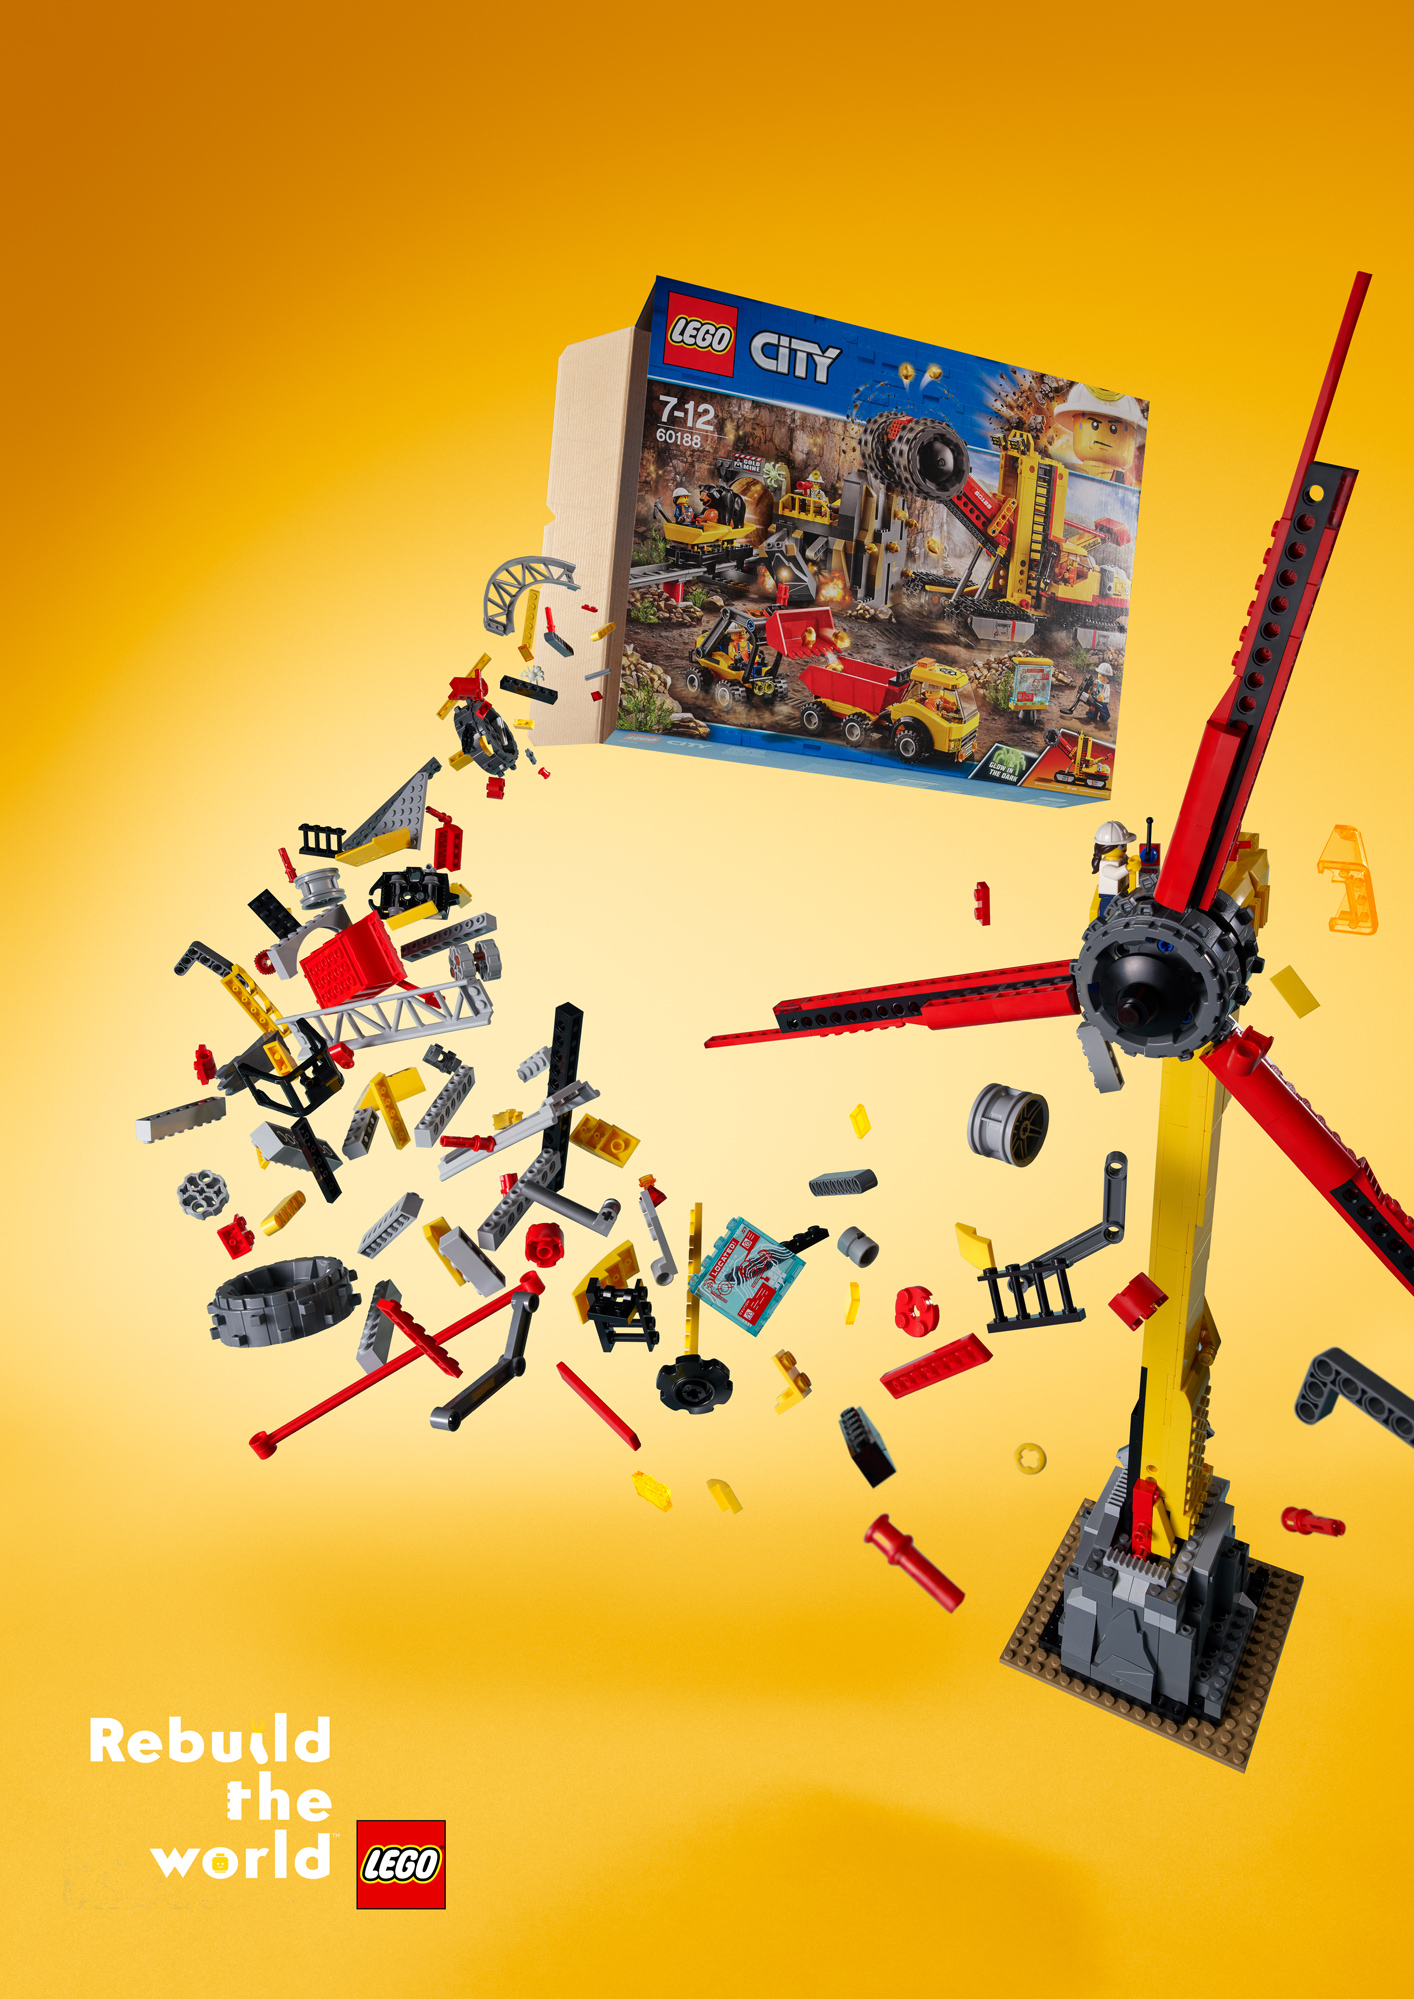 "Bricks spill out from the LEGO City set and form a windmill; ""Kids prefer windmills"" written at the top and at the bottom: ""Rebuild the World""."